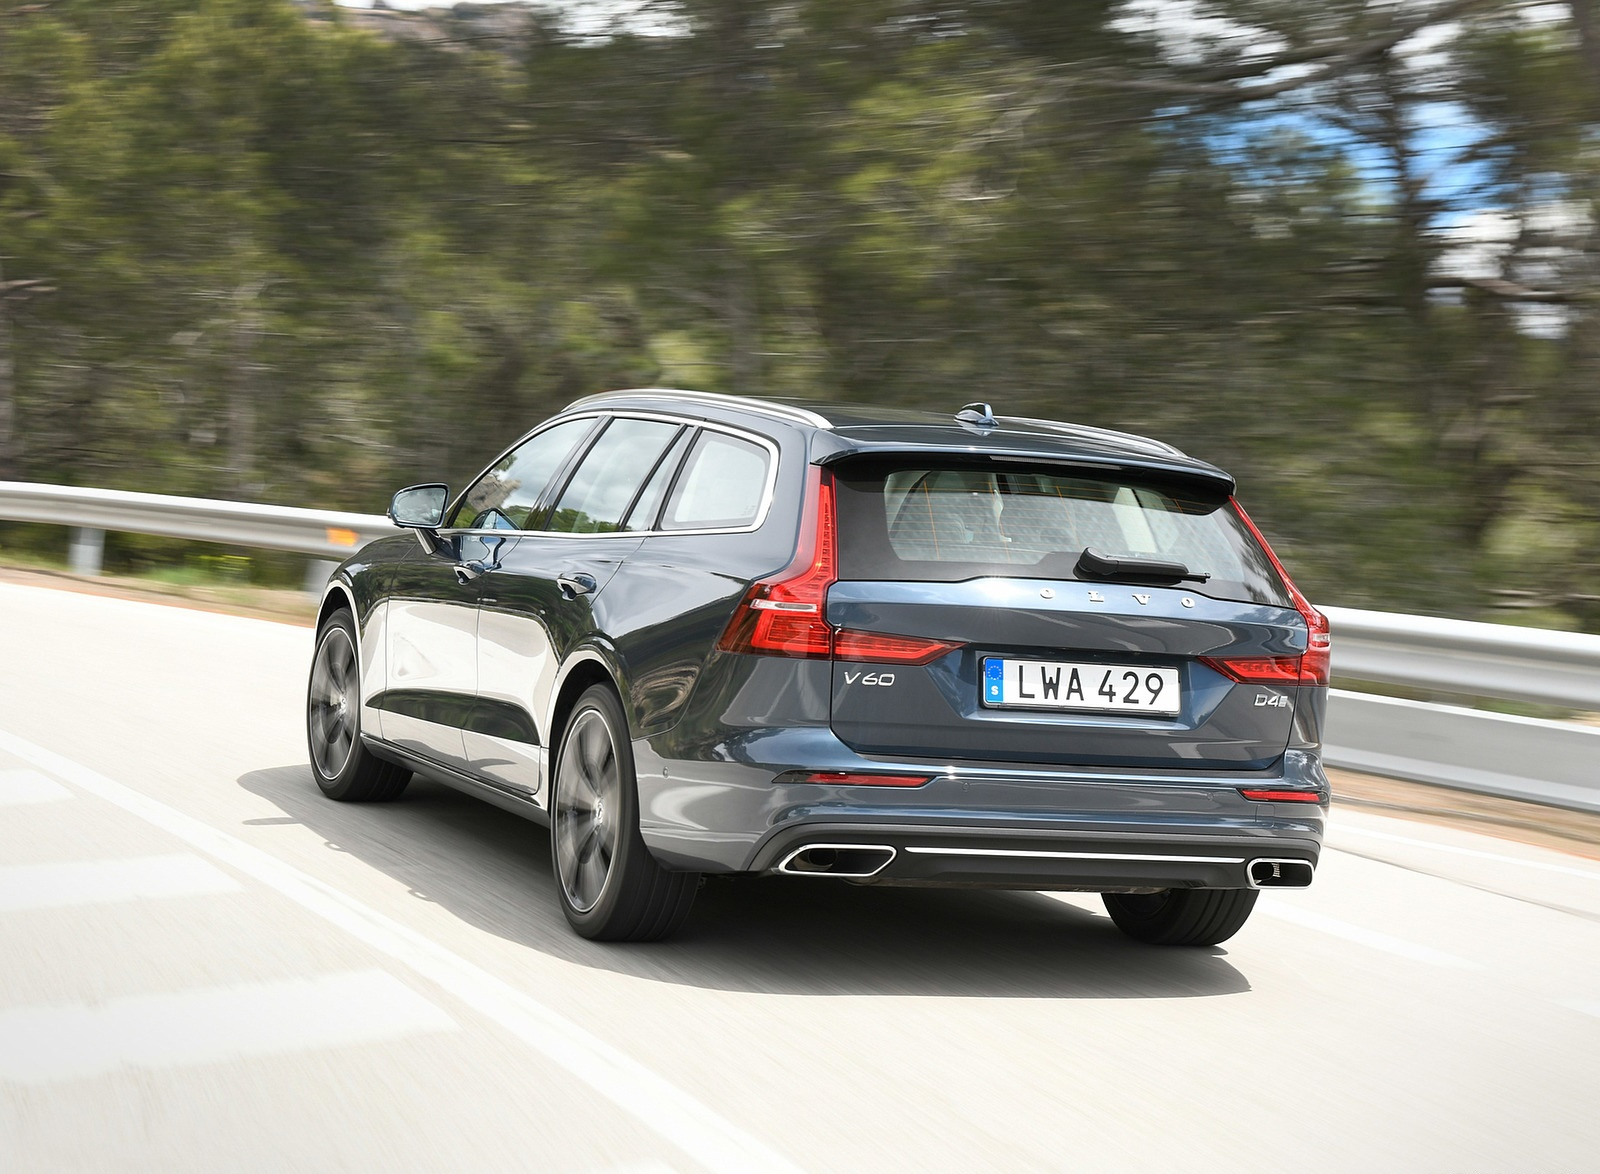 2019 Volvo V60 Rear Wallpaper (6)